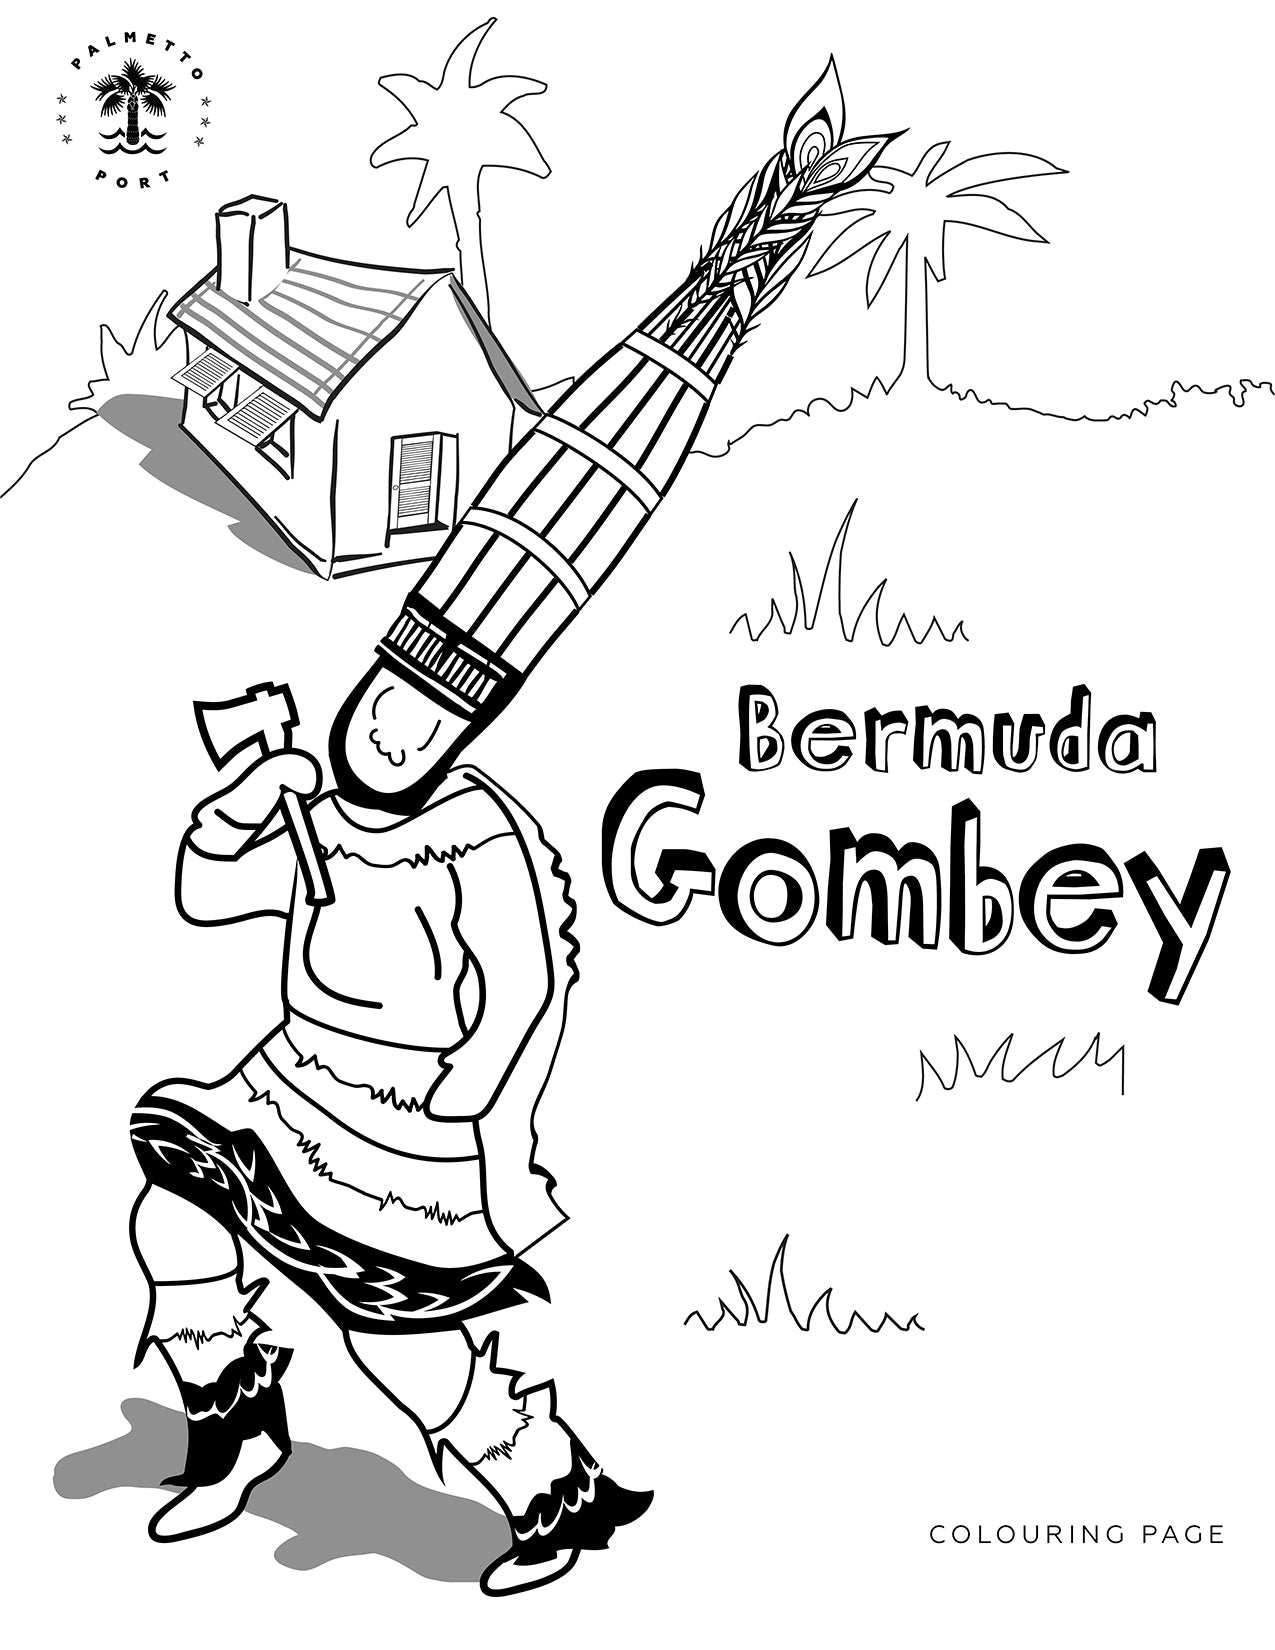 Bermuda Gombey Colouring Sheet